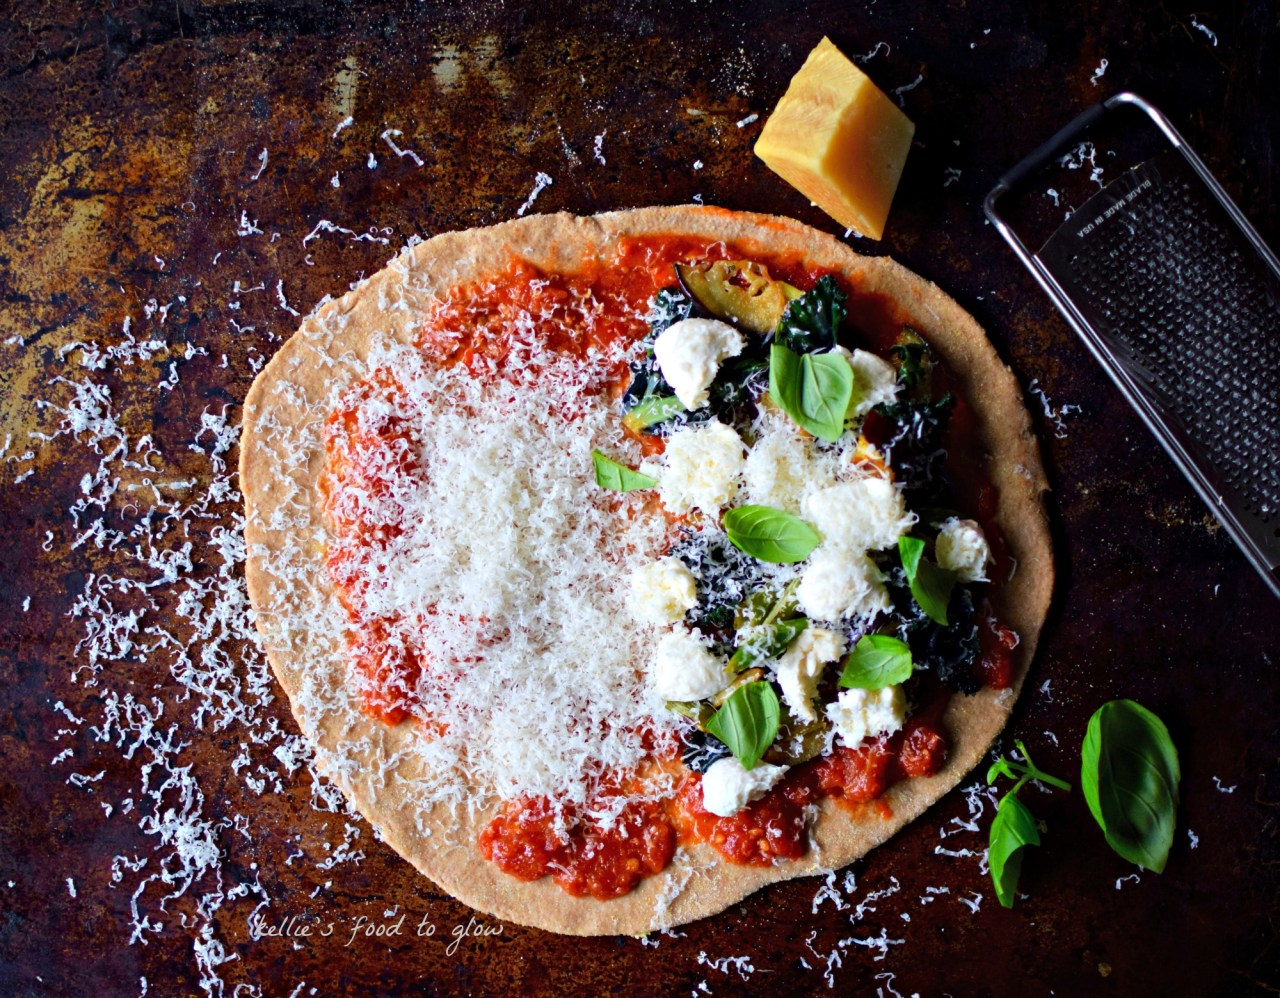 We all know that homemade is better than takeaway, especially when it comes to pizza. Make your family happy by making this easy, food processor-kneaded wholewheat dough, and topping with slivers of long-stemmed broccoli, sauteed eggplant and kalette, all over a quick raw tomato sauce. Family-friendly vegan or vegetarian healthy eating. This also makes brilliant calzones too.